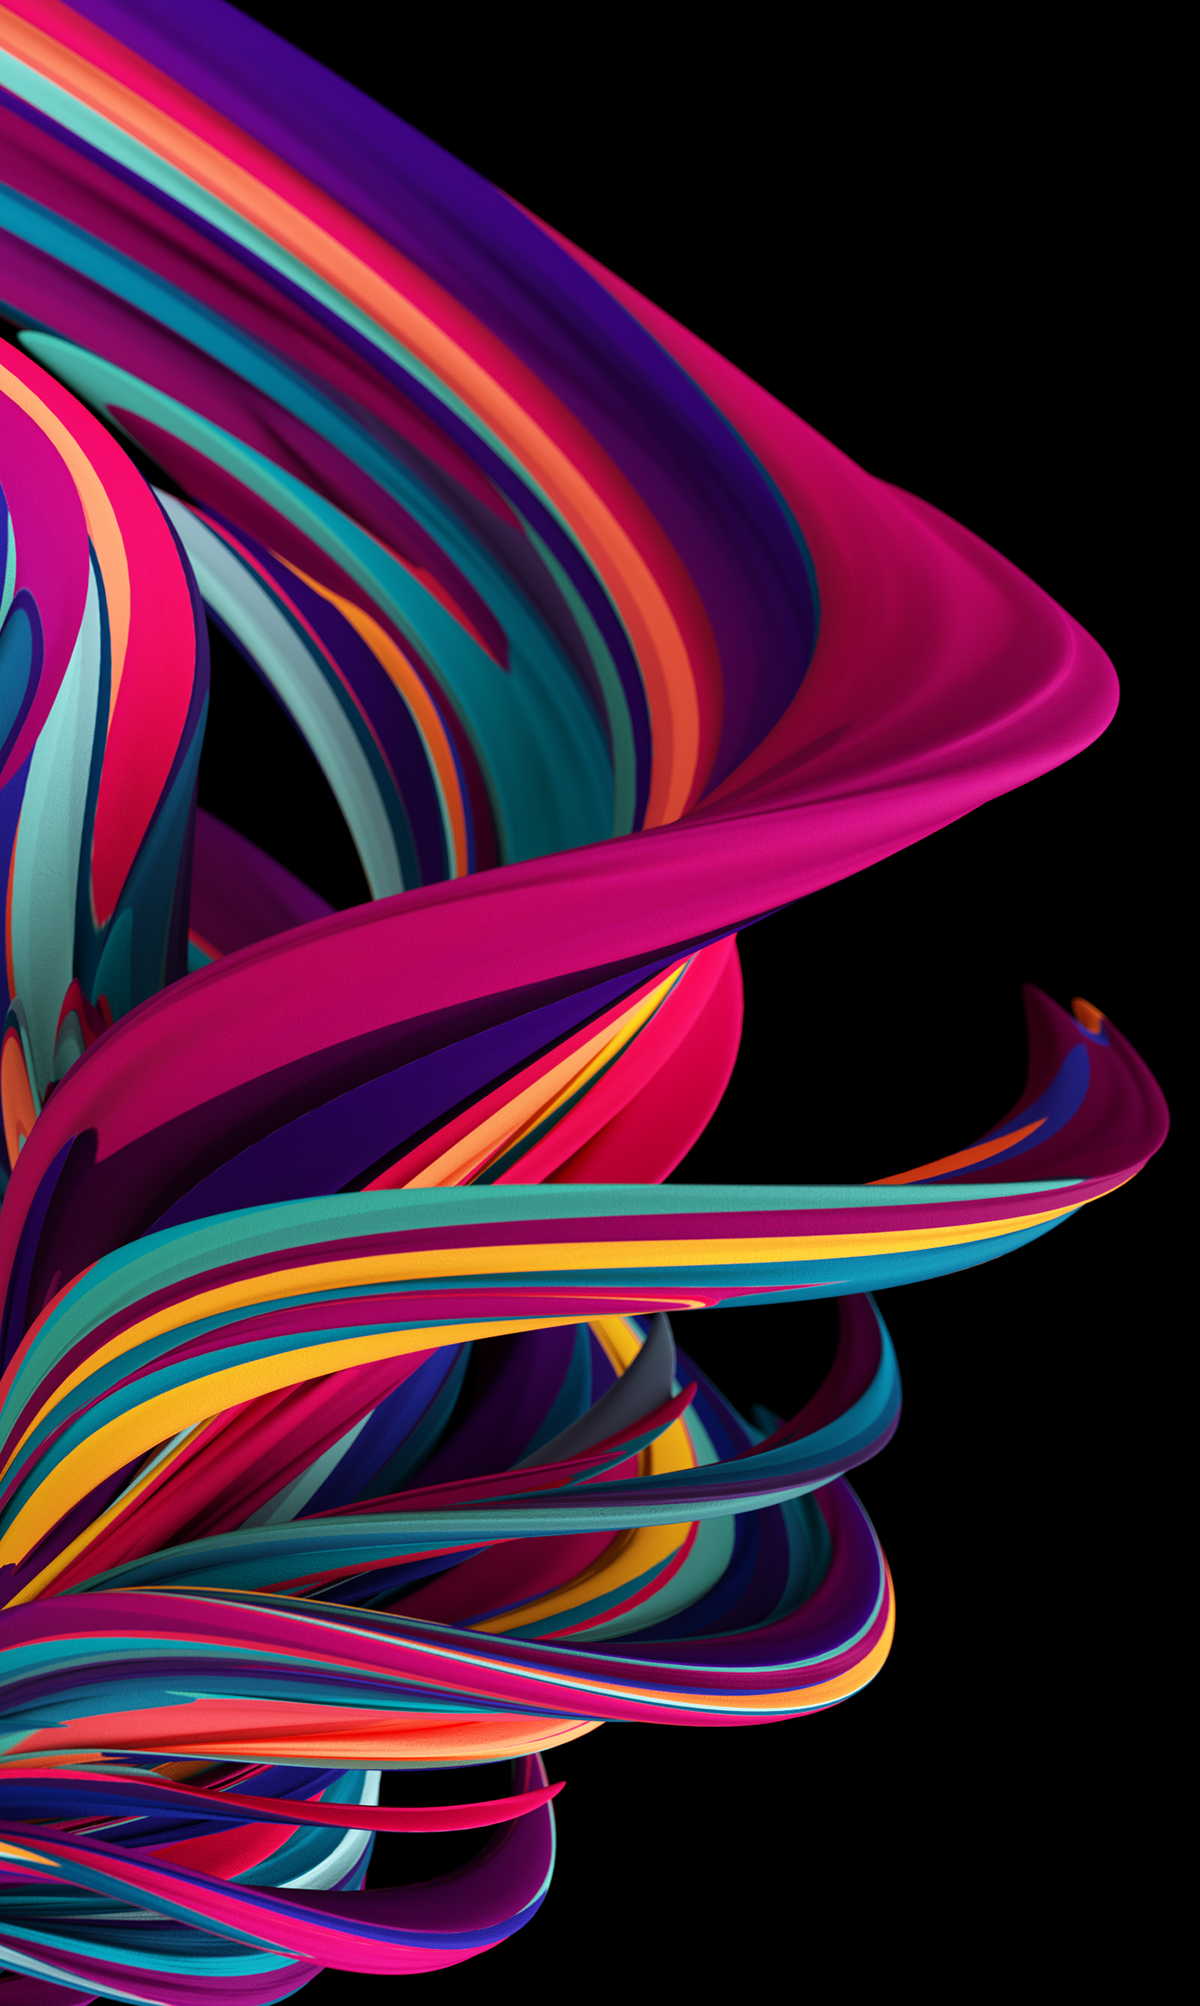 Danny Ivan 3d Imagery Maker Curved Lines Series 1 0 Abstract Iphone Wallpaper Cool Backgrounds Wallpapers Huawei Wallpapers